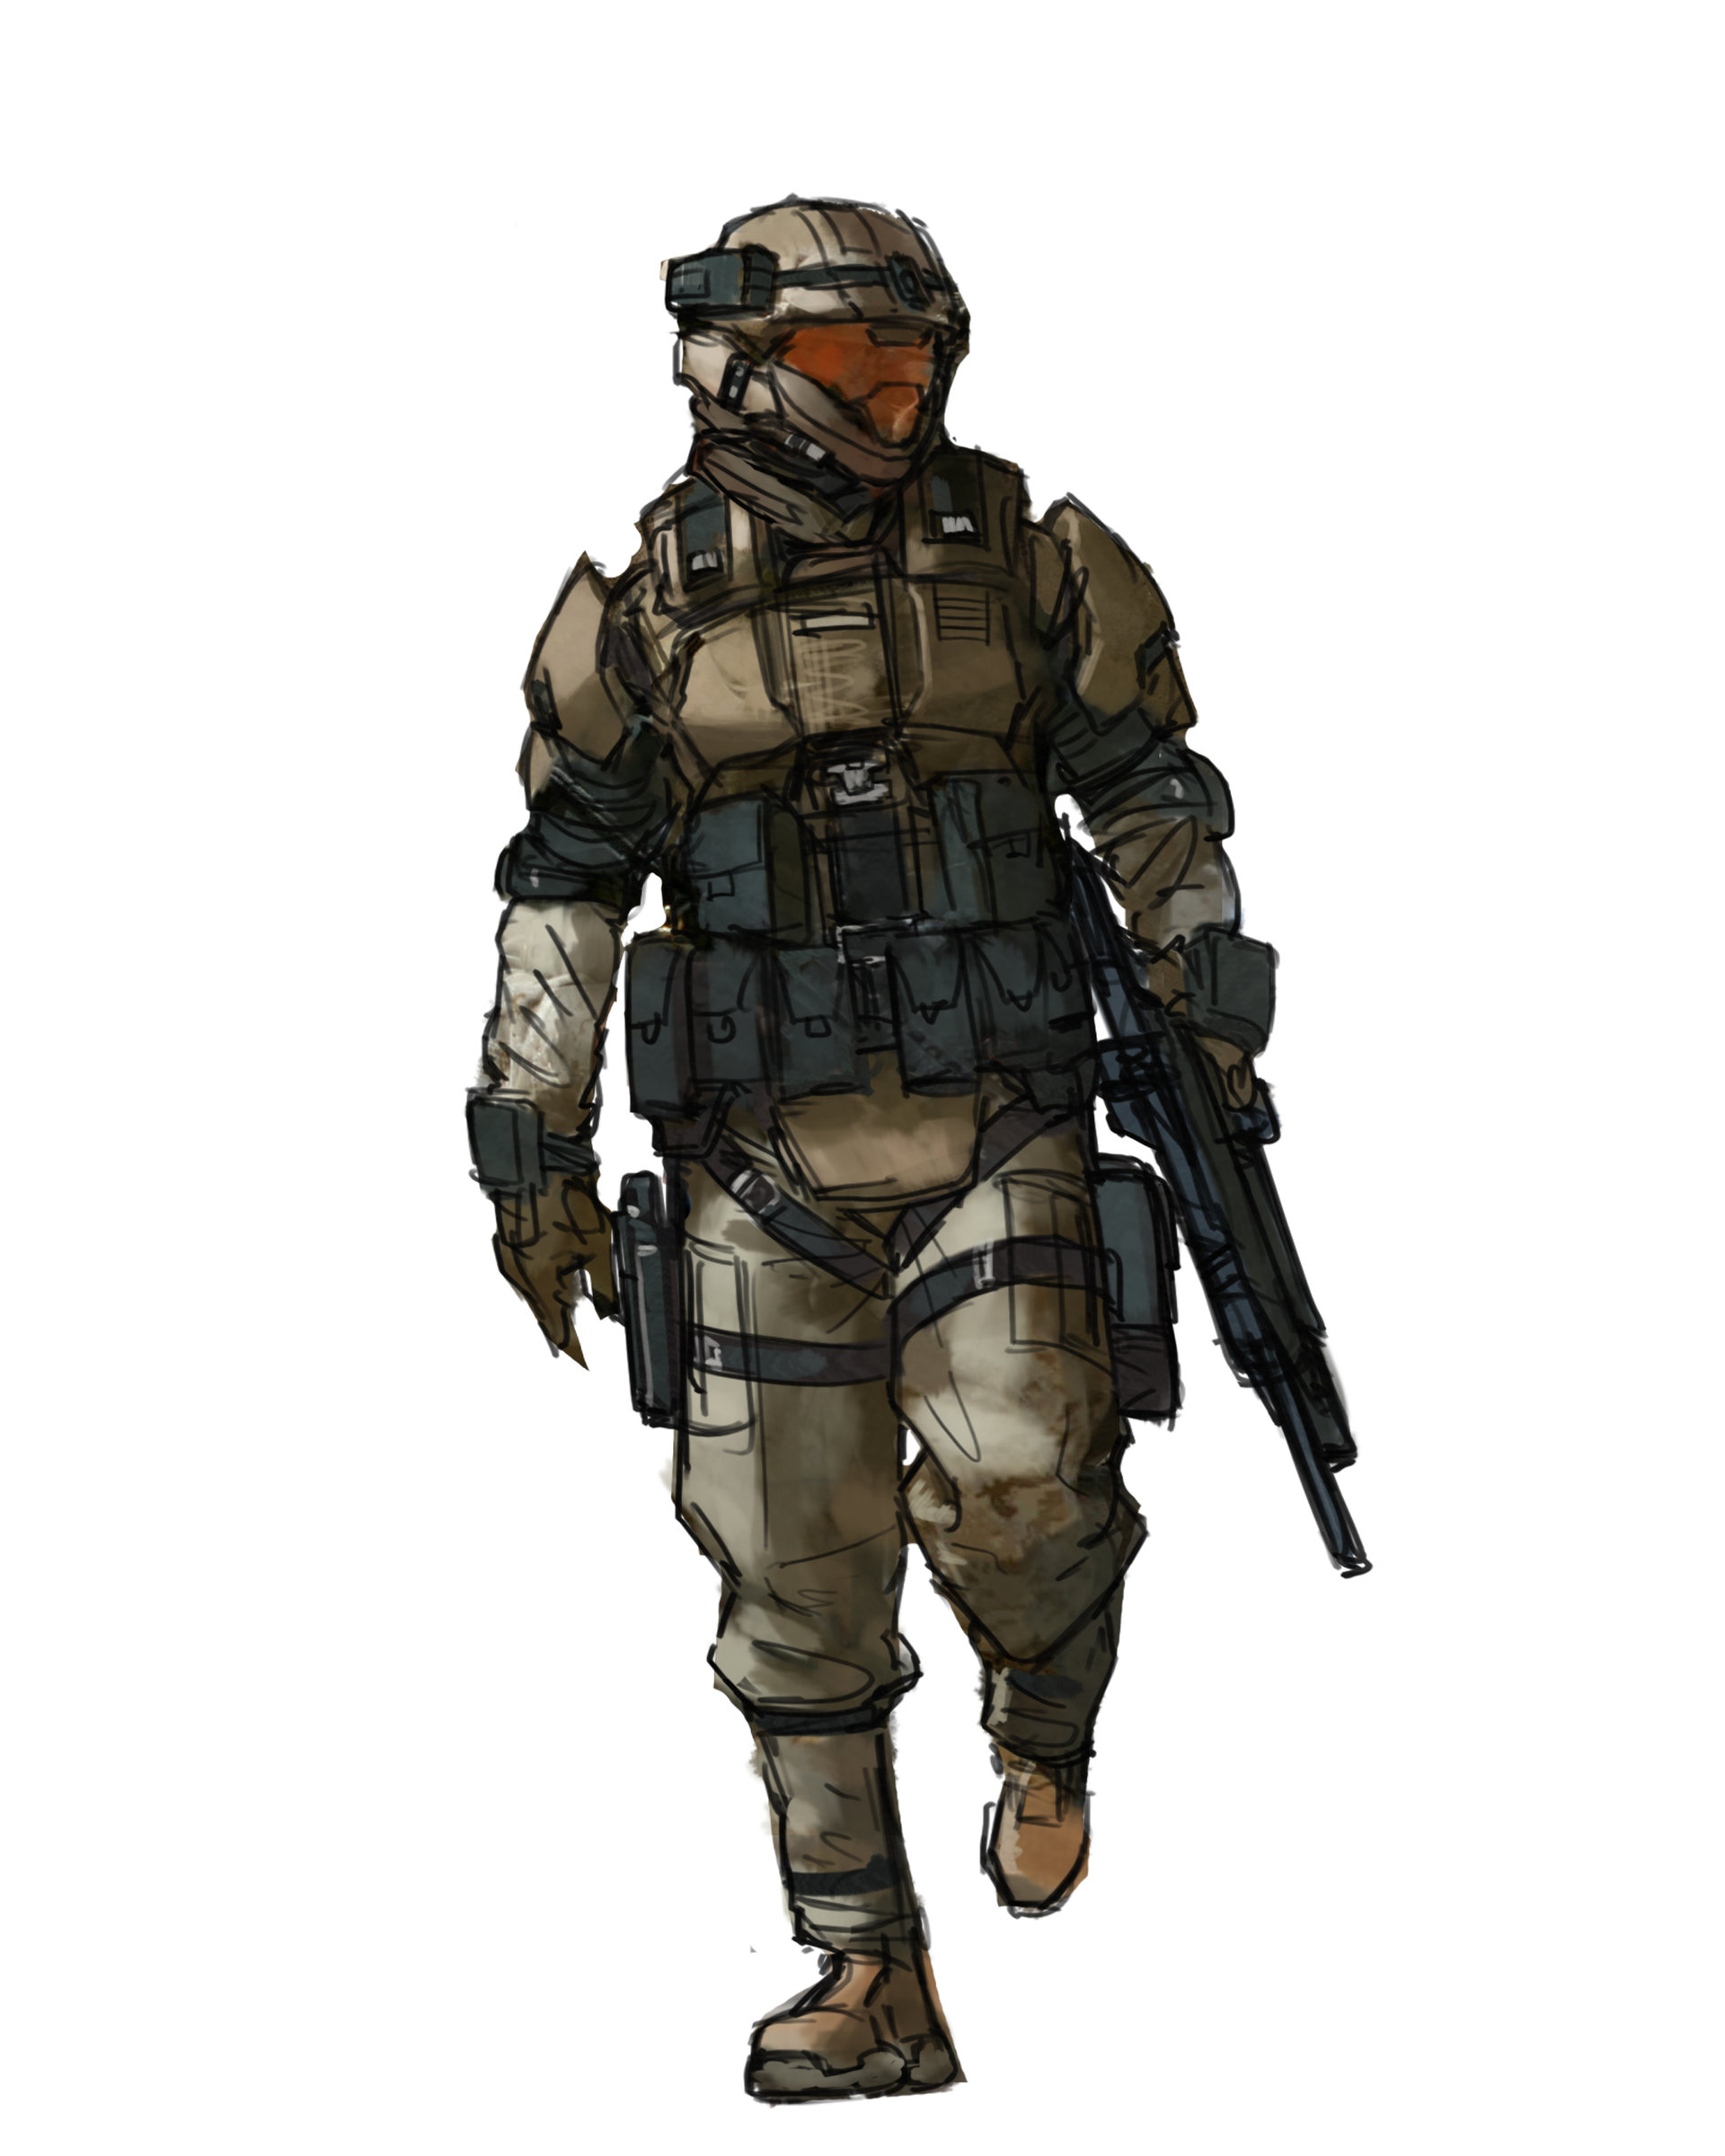 halo 3 essay Essay on violence in the media   call of duty: black ops, halo 3, and so forth  violence in the media essay violence in the media america has.